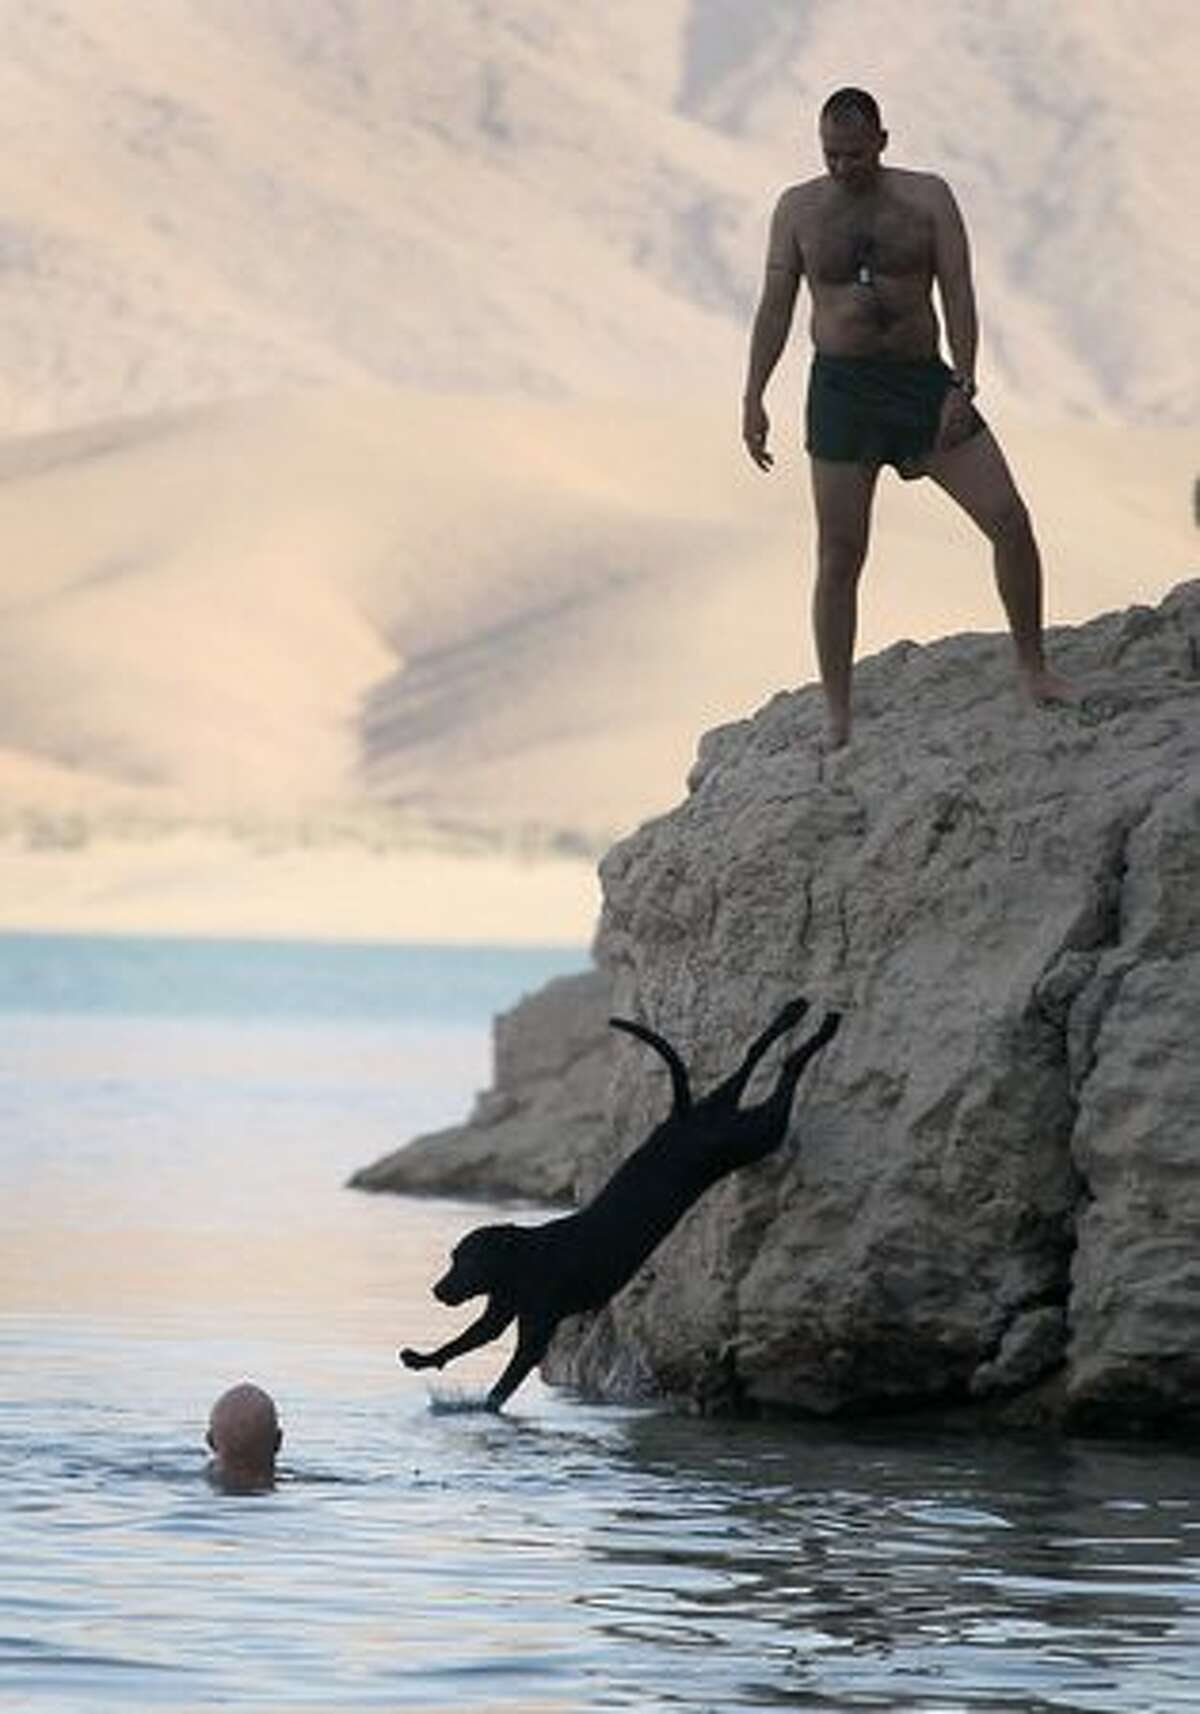 Marines with India Battery, 3rd Battalion, 12th Marine Regiment and their improvised explosive device sniffing dog go for a swim in the reservoir above the Kajaki dam during a break in action at Forward Operating Base Zeebrugge on October 12, 2010 in Kajaki, Afghanistan.